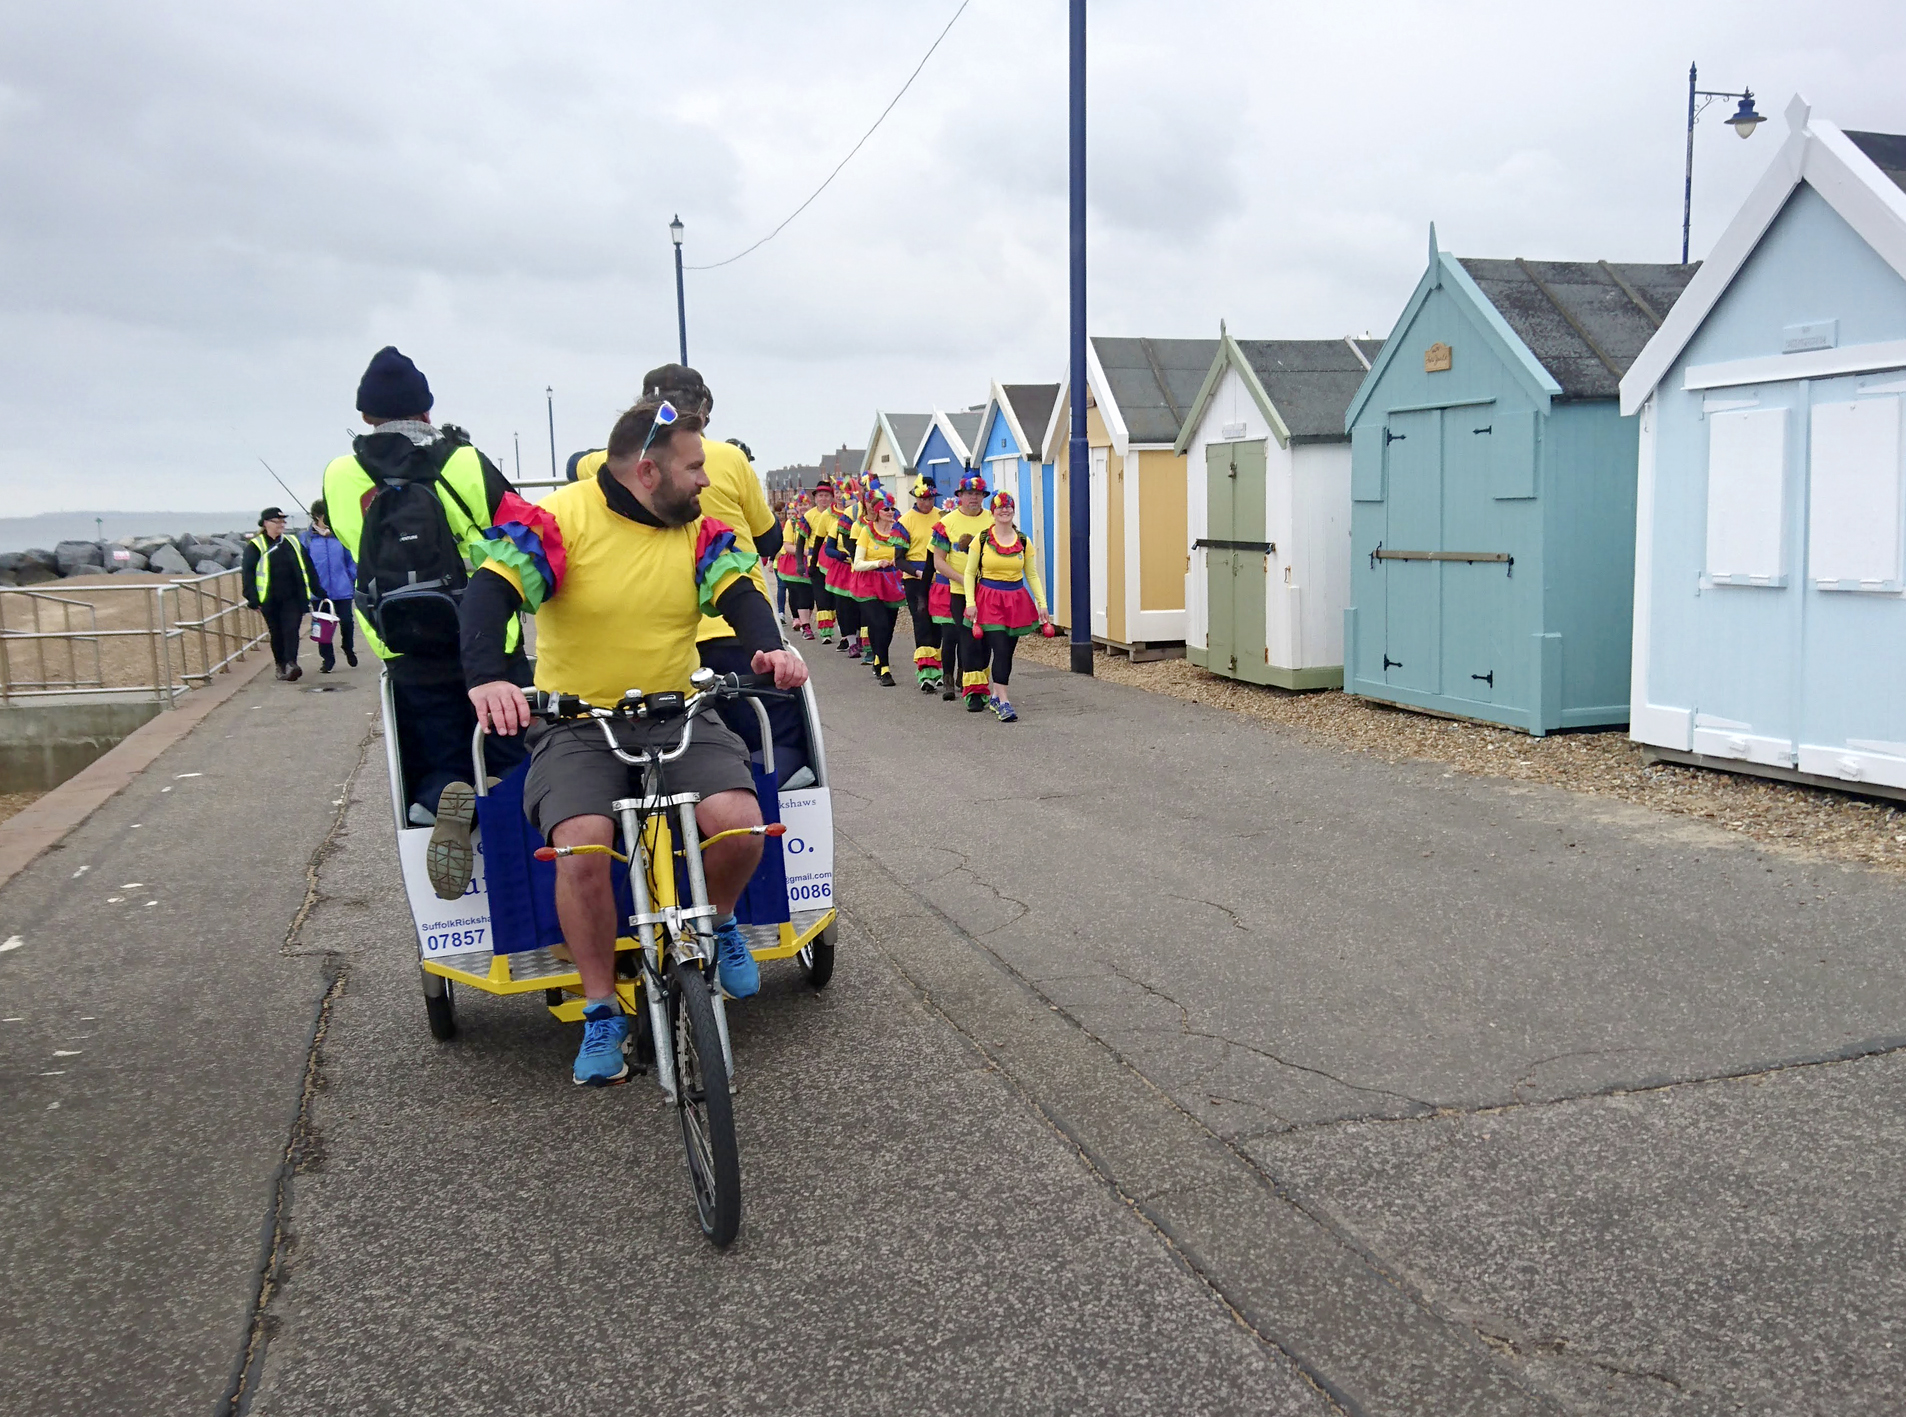 Ian from Suffolk Rickshaw Company cycled ahead of the conga line and carried the team of volunteers doing the filming